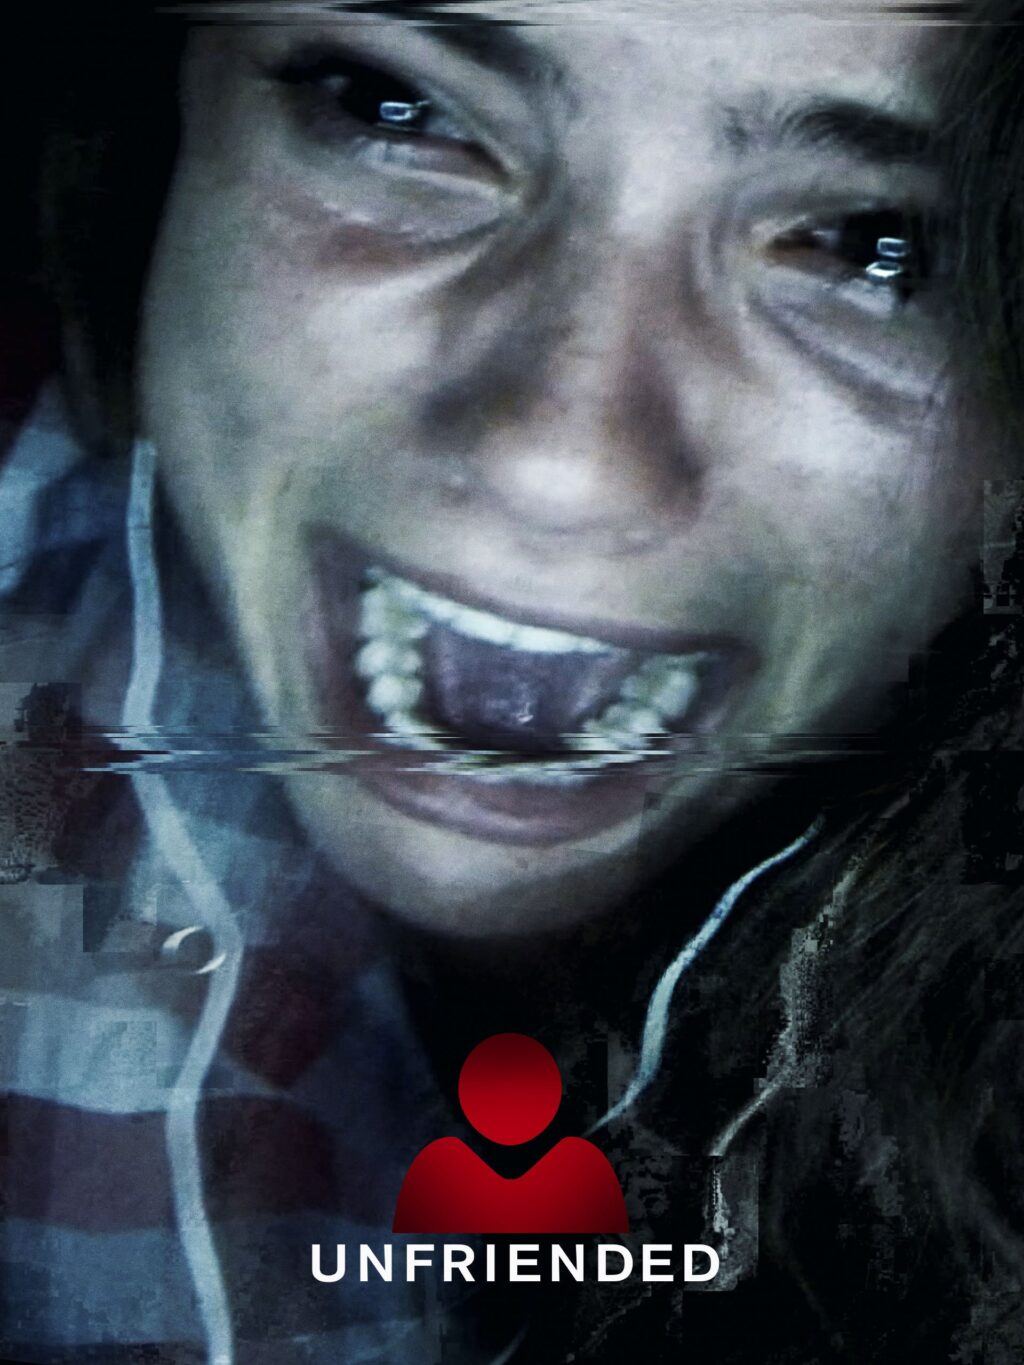 UnfriendedPosterDC 1024x1365 - Horror History: UNFRIENDED Is Now 6 Years Old